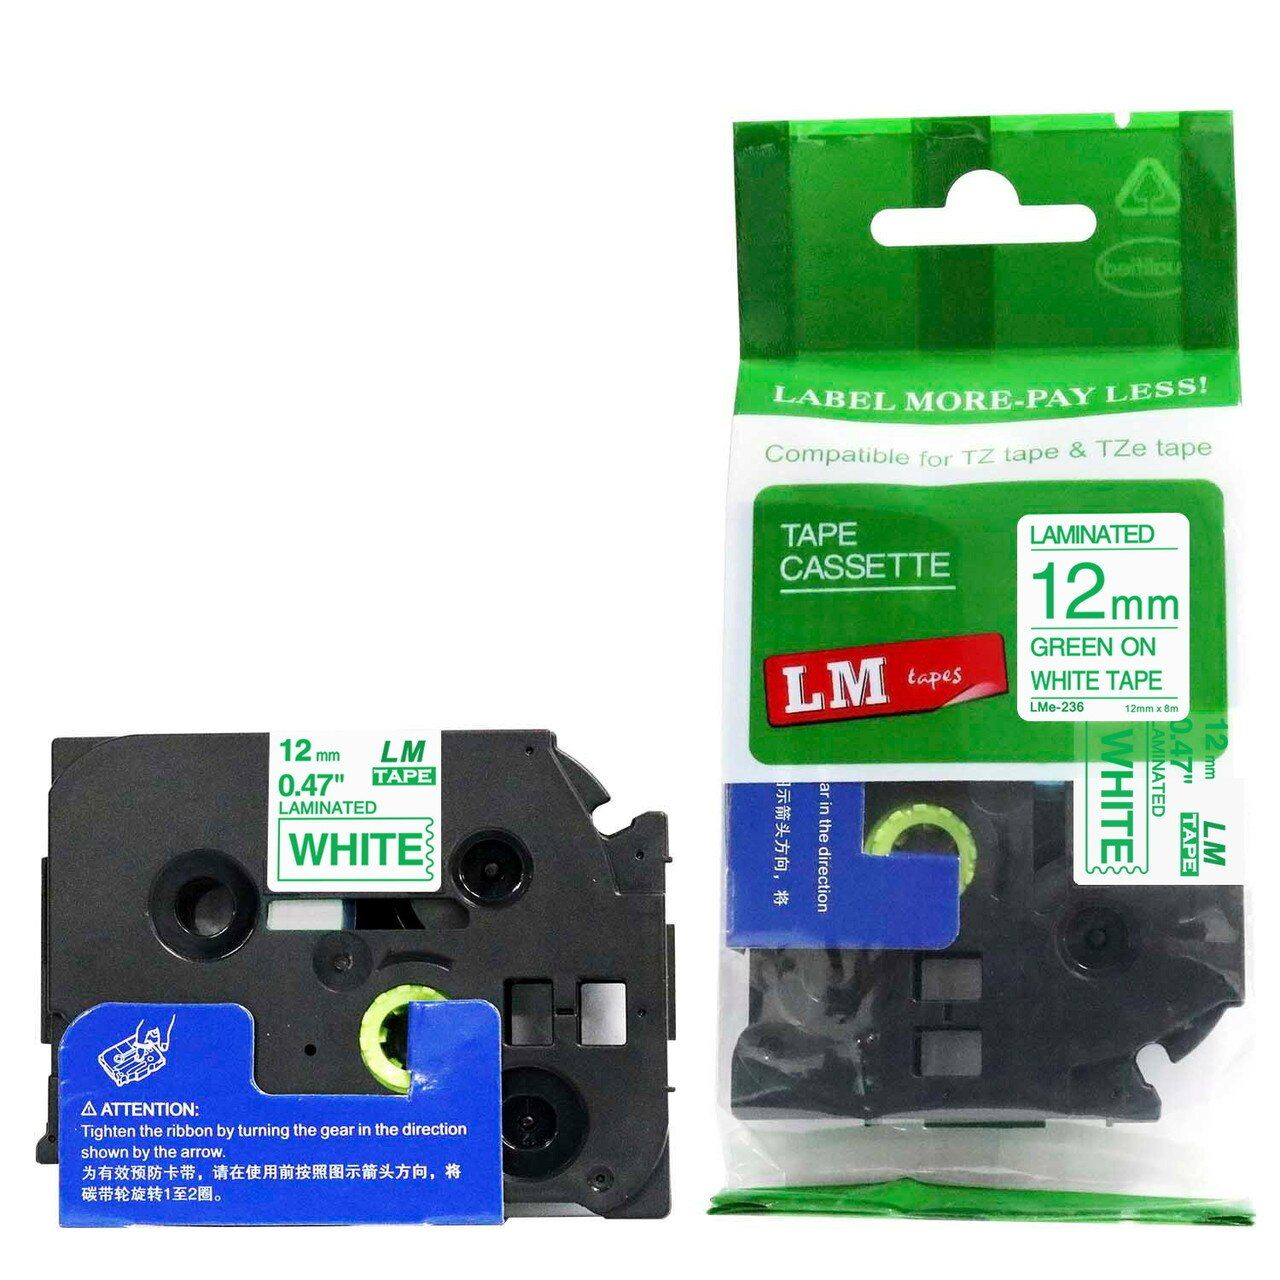 Lm Tape Compatible Tze 1 2 Green On White P Touch Tape 12mm Label Printer Tape Cassette Tapes